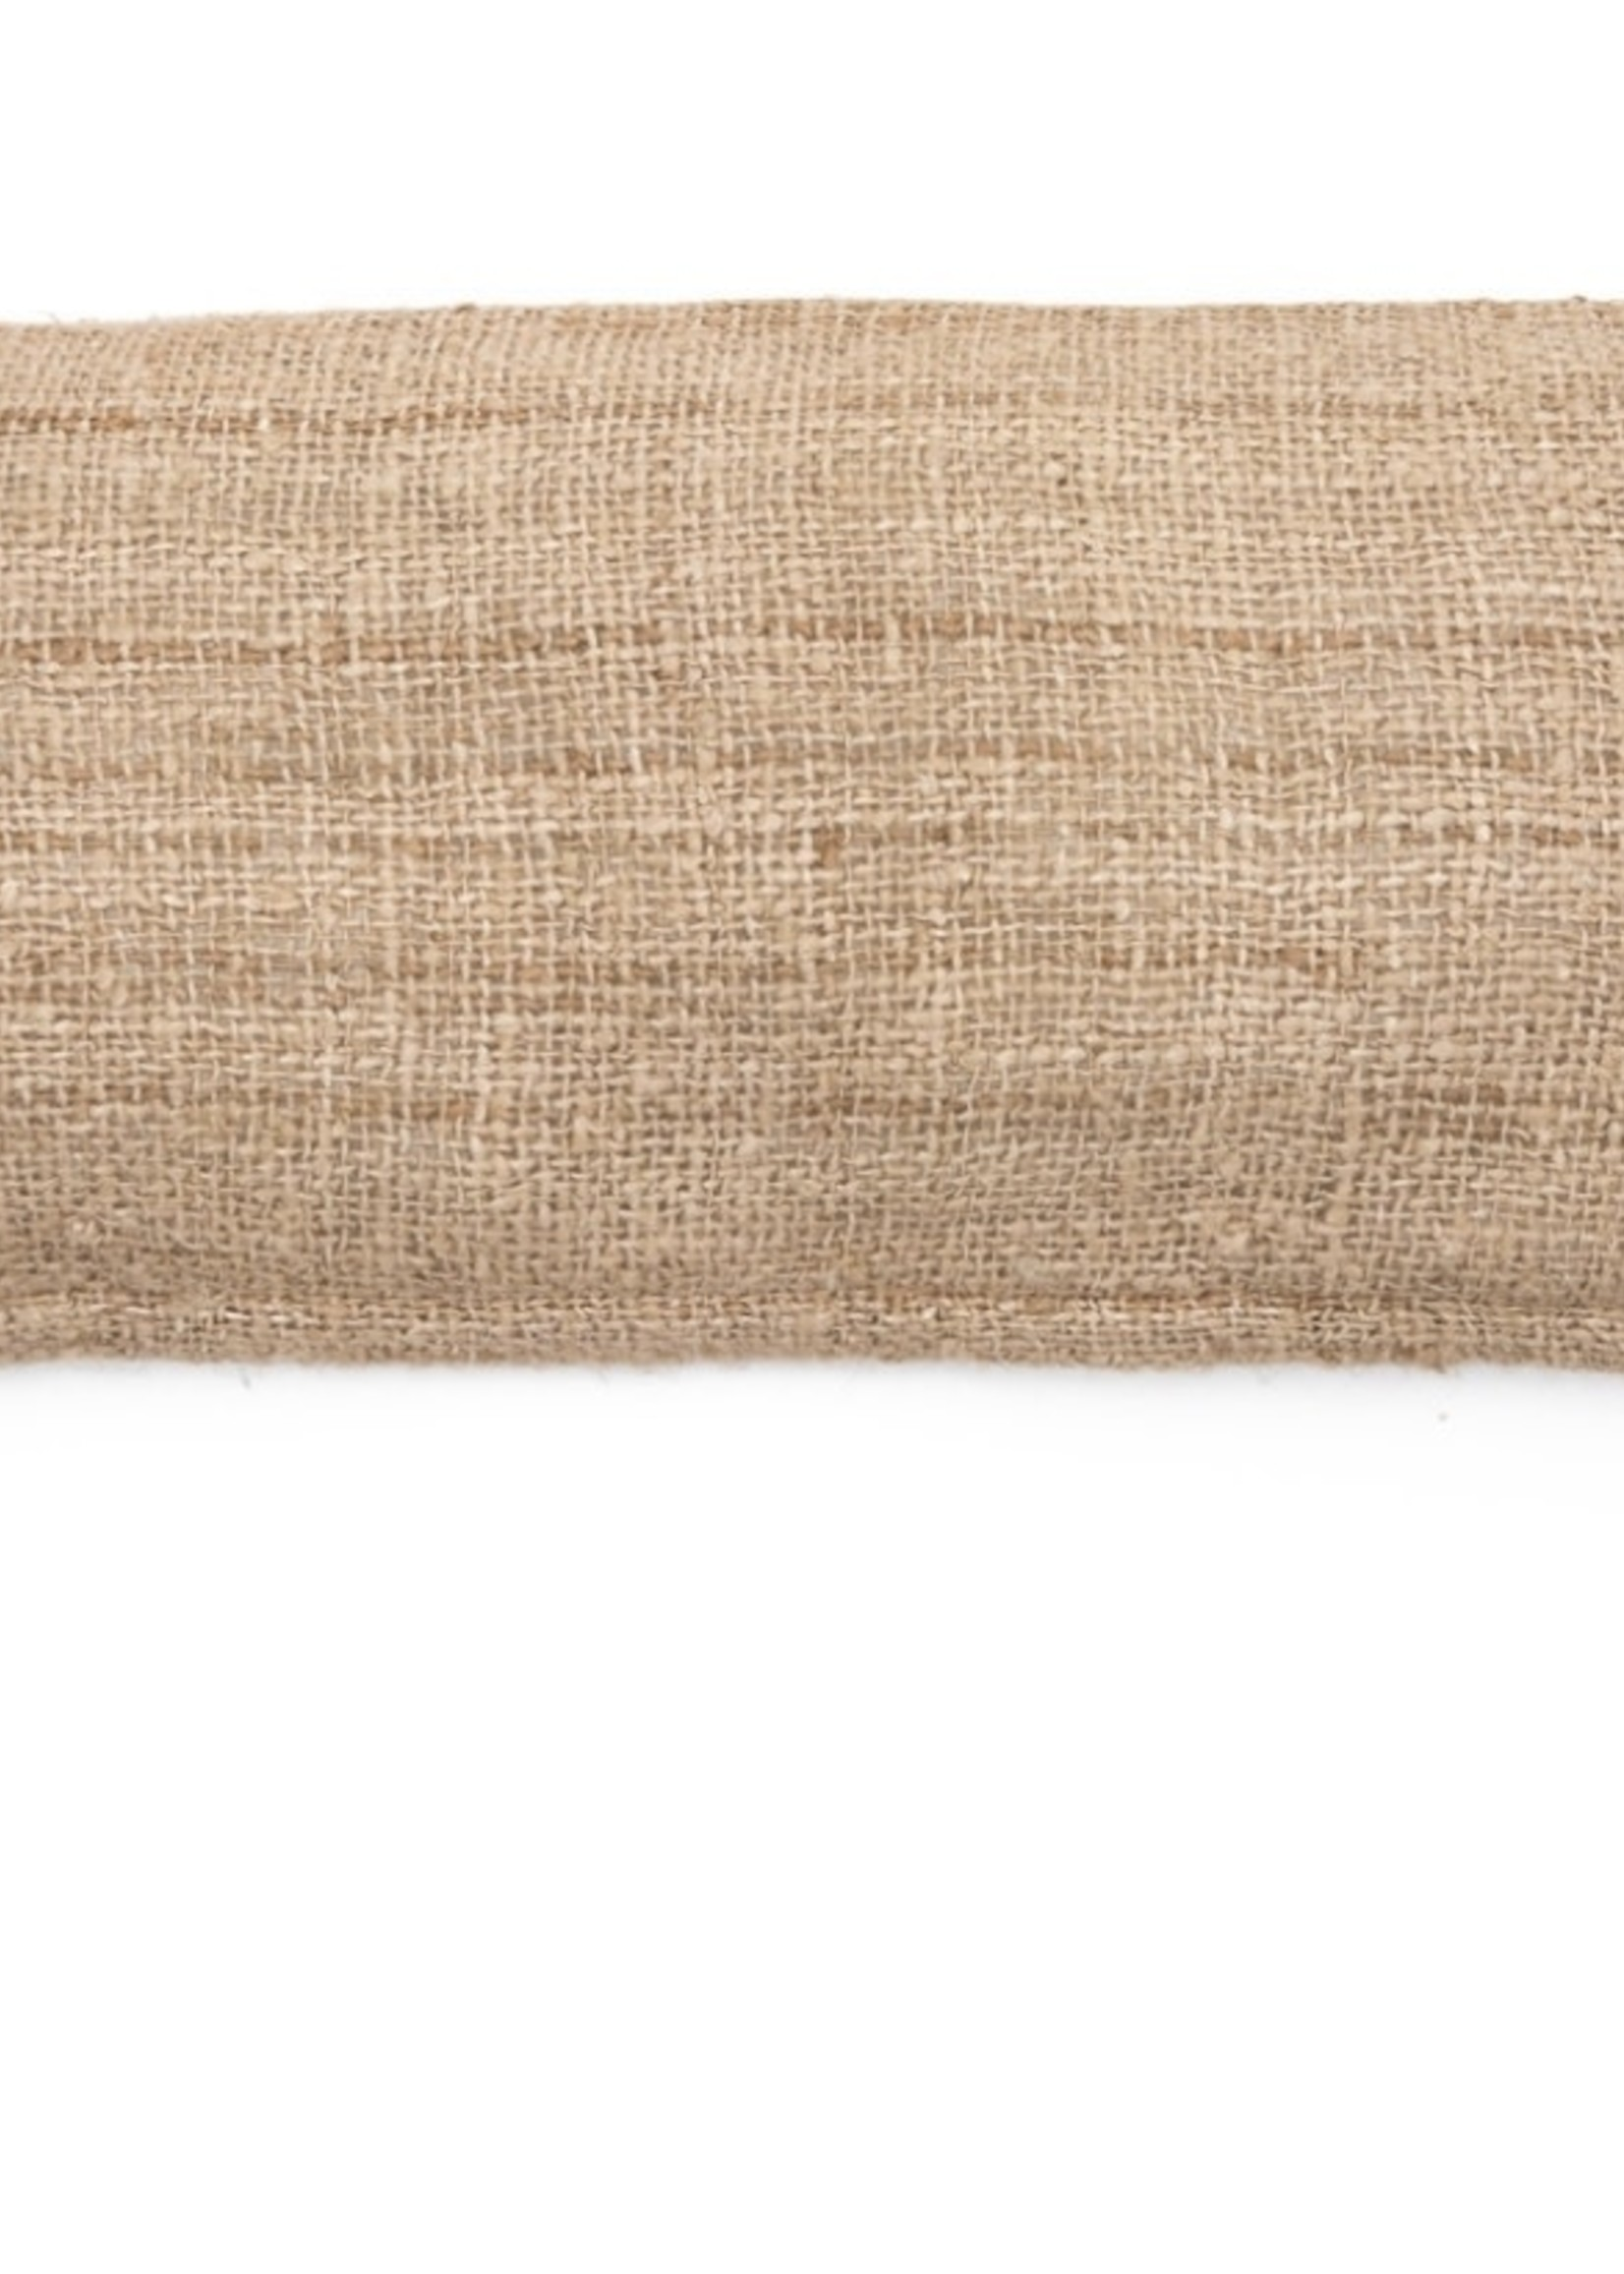 Guts & Goats The Oh My Gee Cushion Cover - Beige